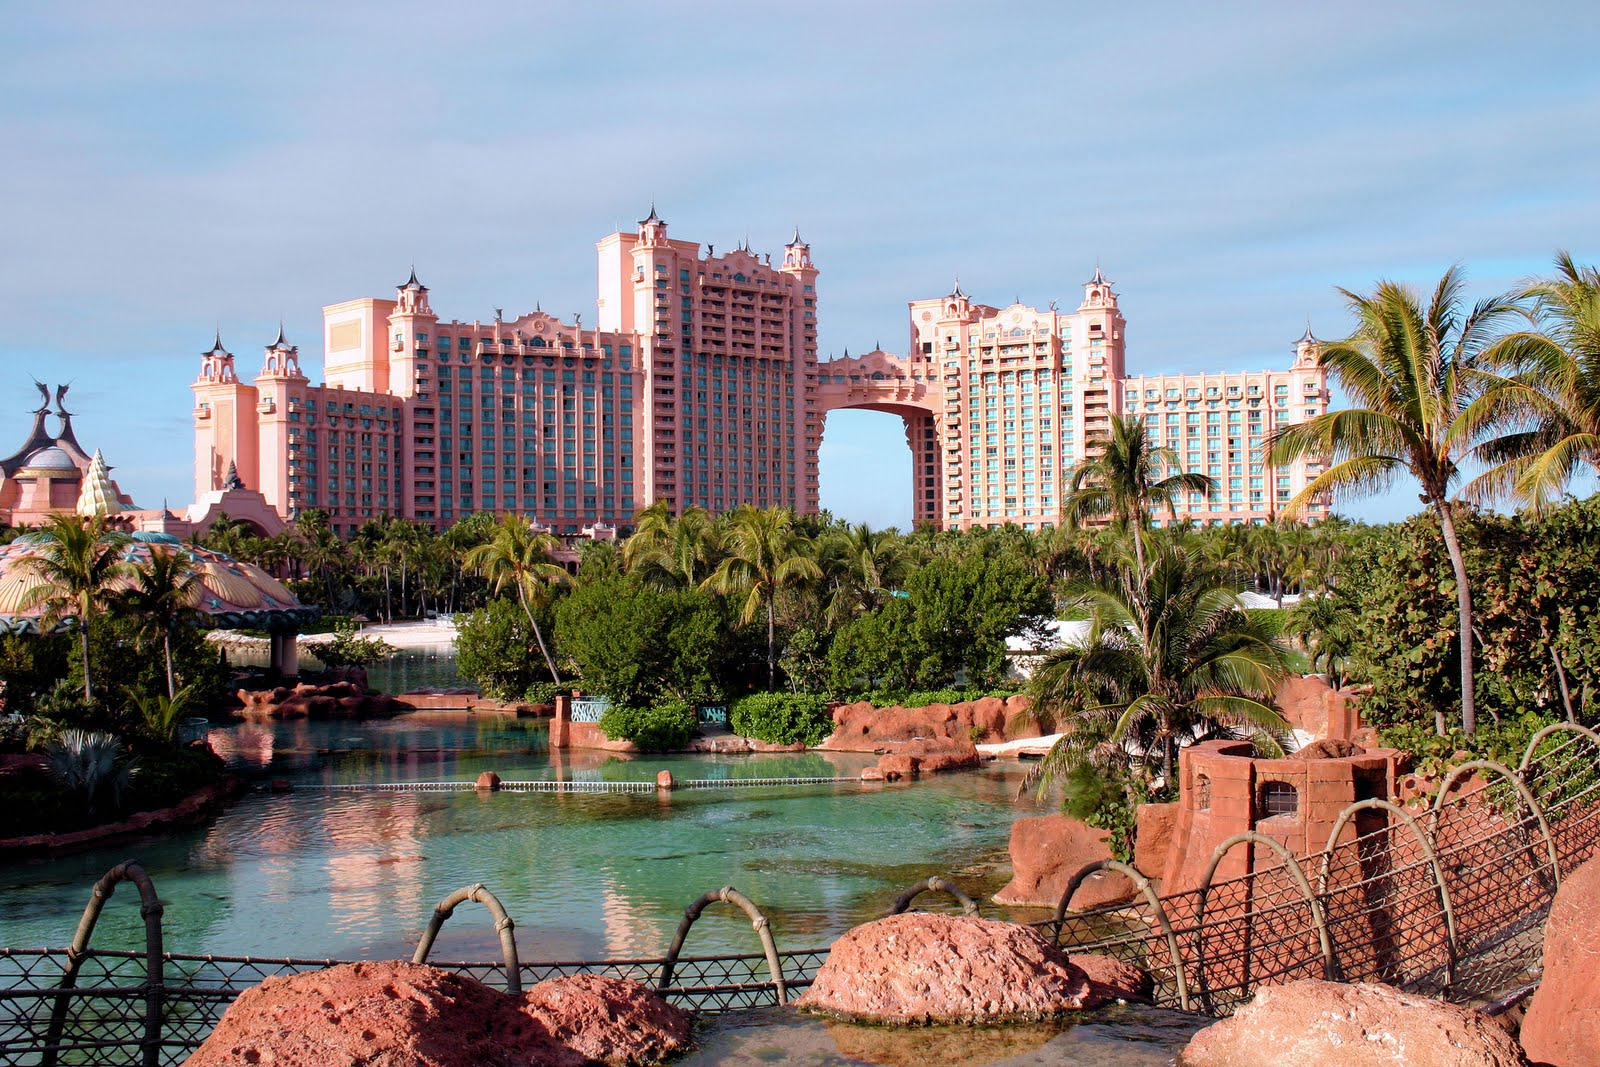 Punch canada news tripatlas takes the guess work out of hotel booking online - Atlantis hotel in bahamas ...